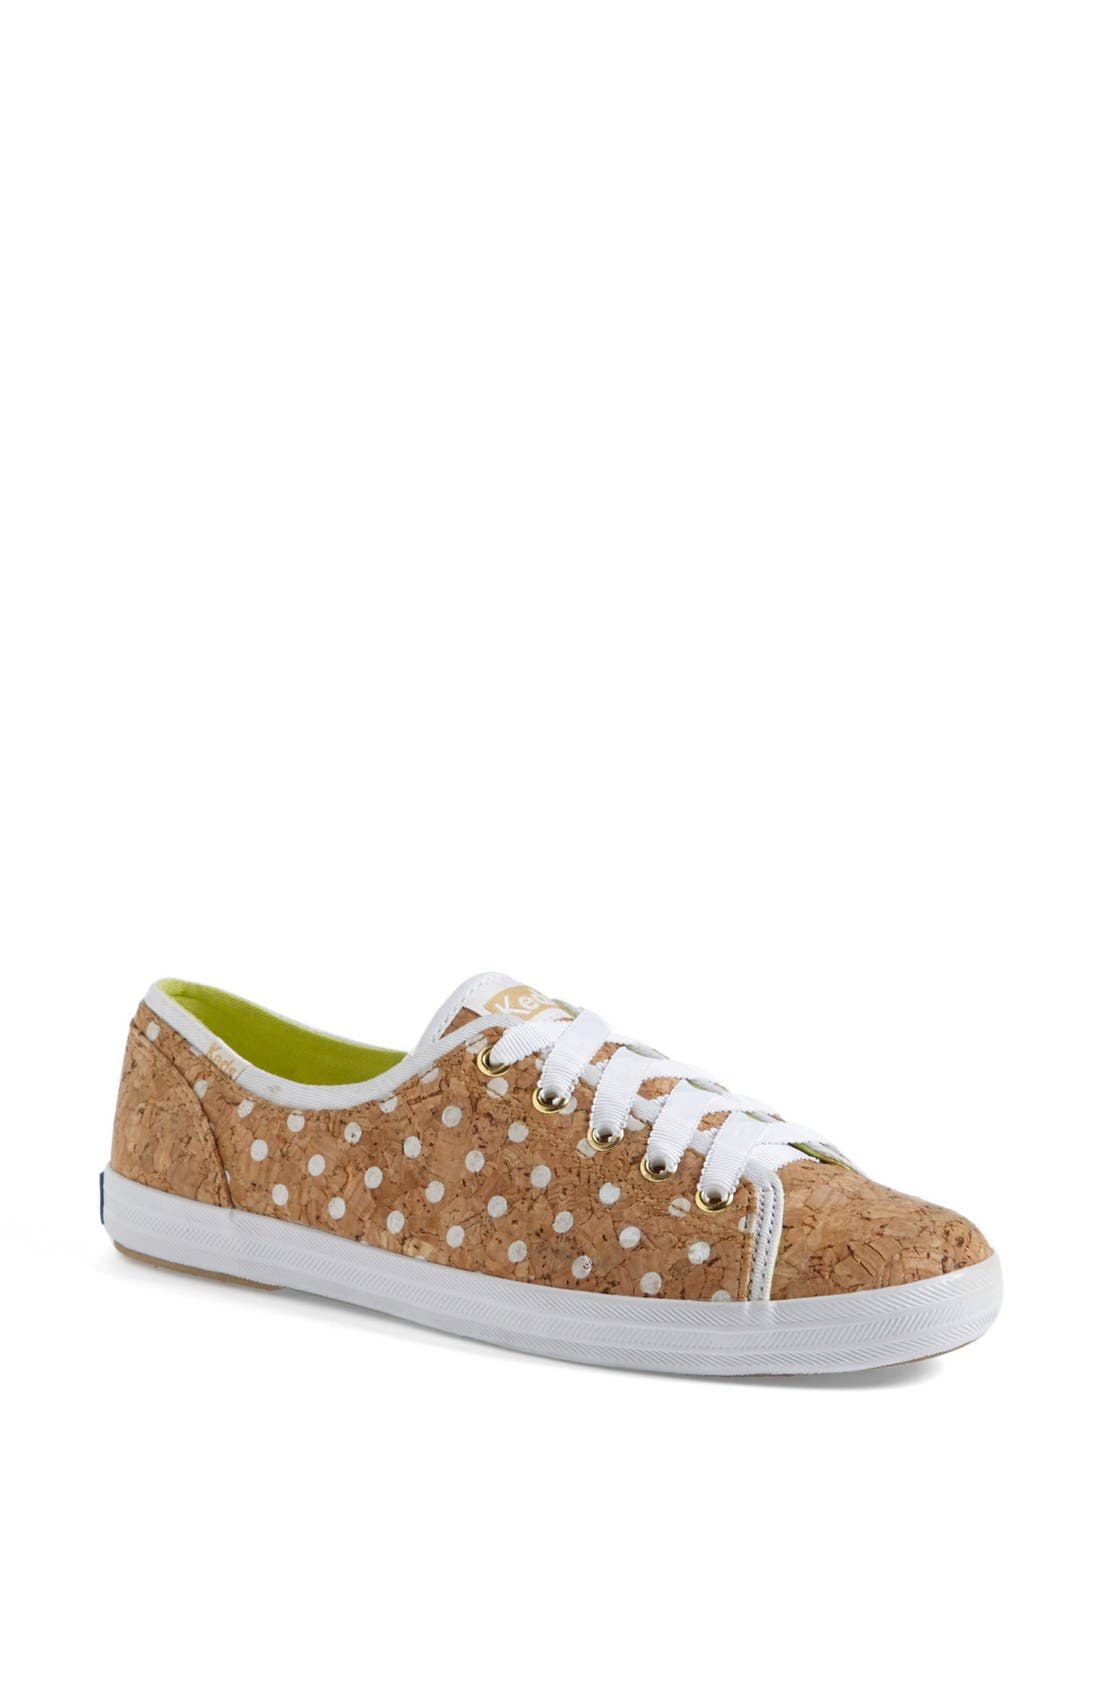 Alternate Image 1 Selected - Keds® 'Rally' Cork Sneaker (Women)